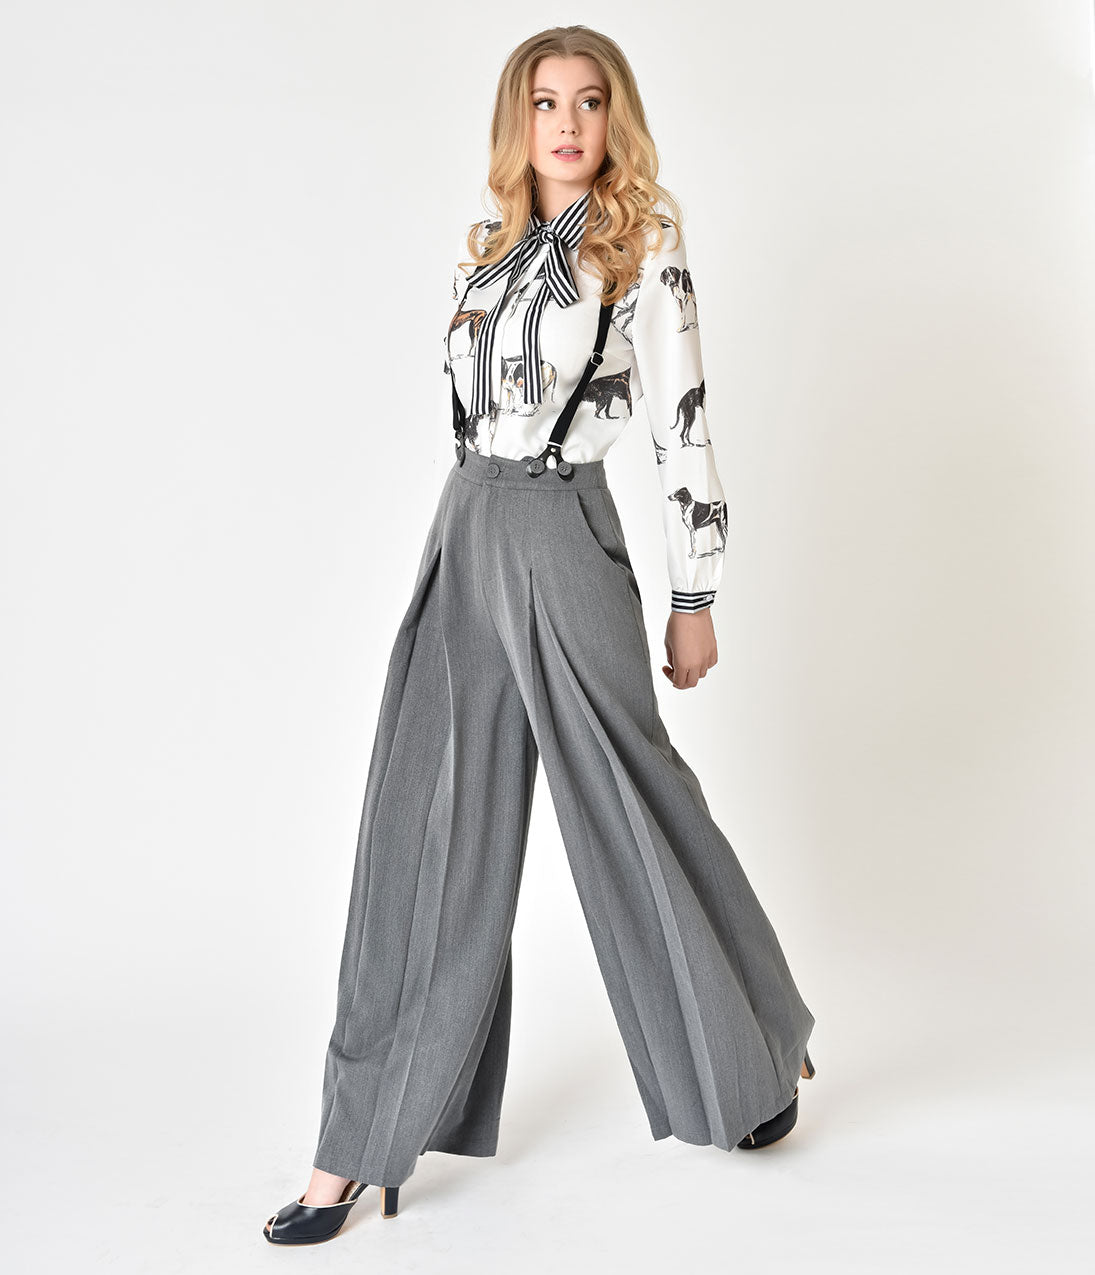 1920s Skirts, Gatsby Skirts, Vintage Pleated Skirts Voodoo Vixen 1940S Style Grey Khloe Suspender Trousers $62.00 AT vintagedancer.com